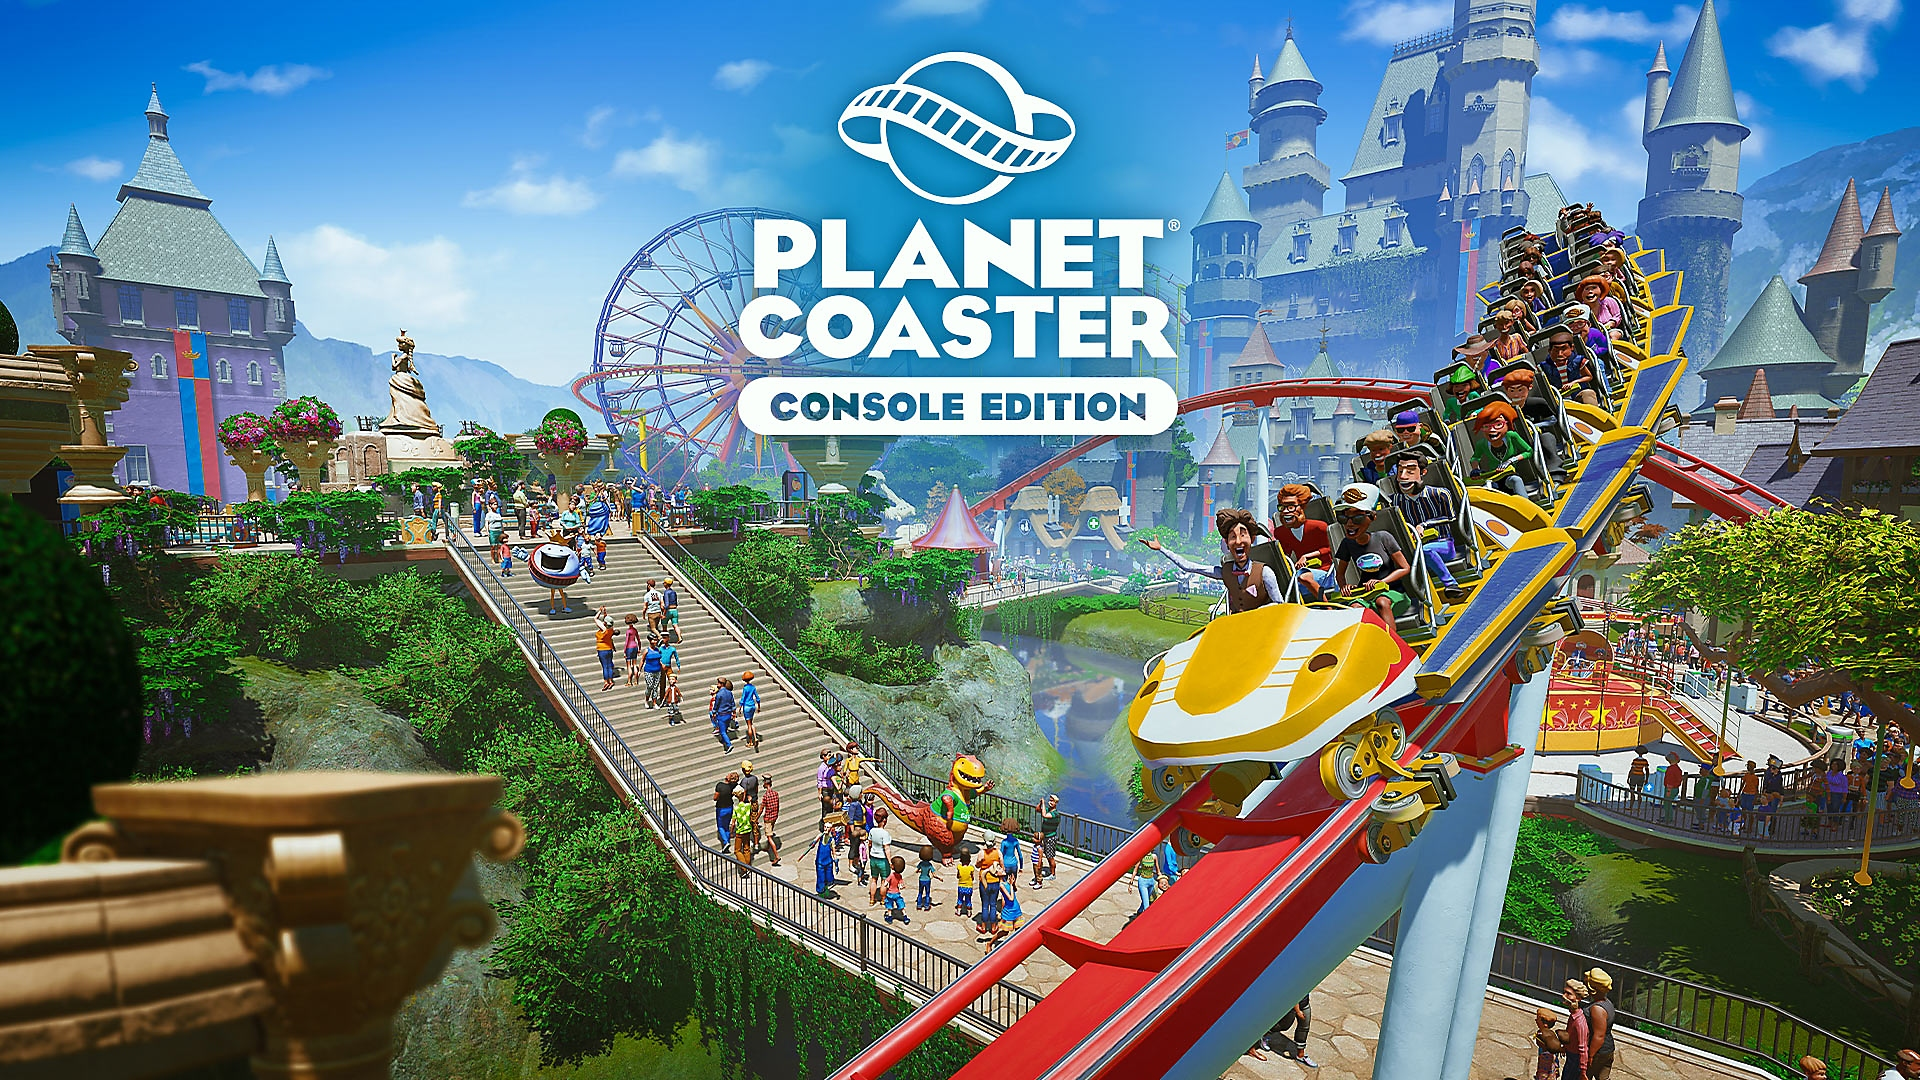 Planet Coaster: Console Edition - Launch Trailer | PS4, PS5